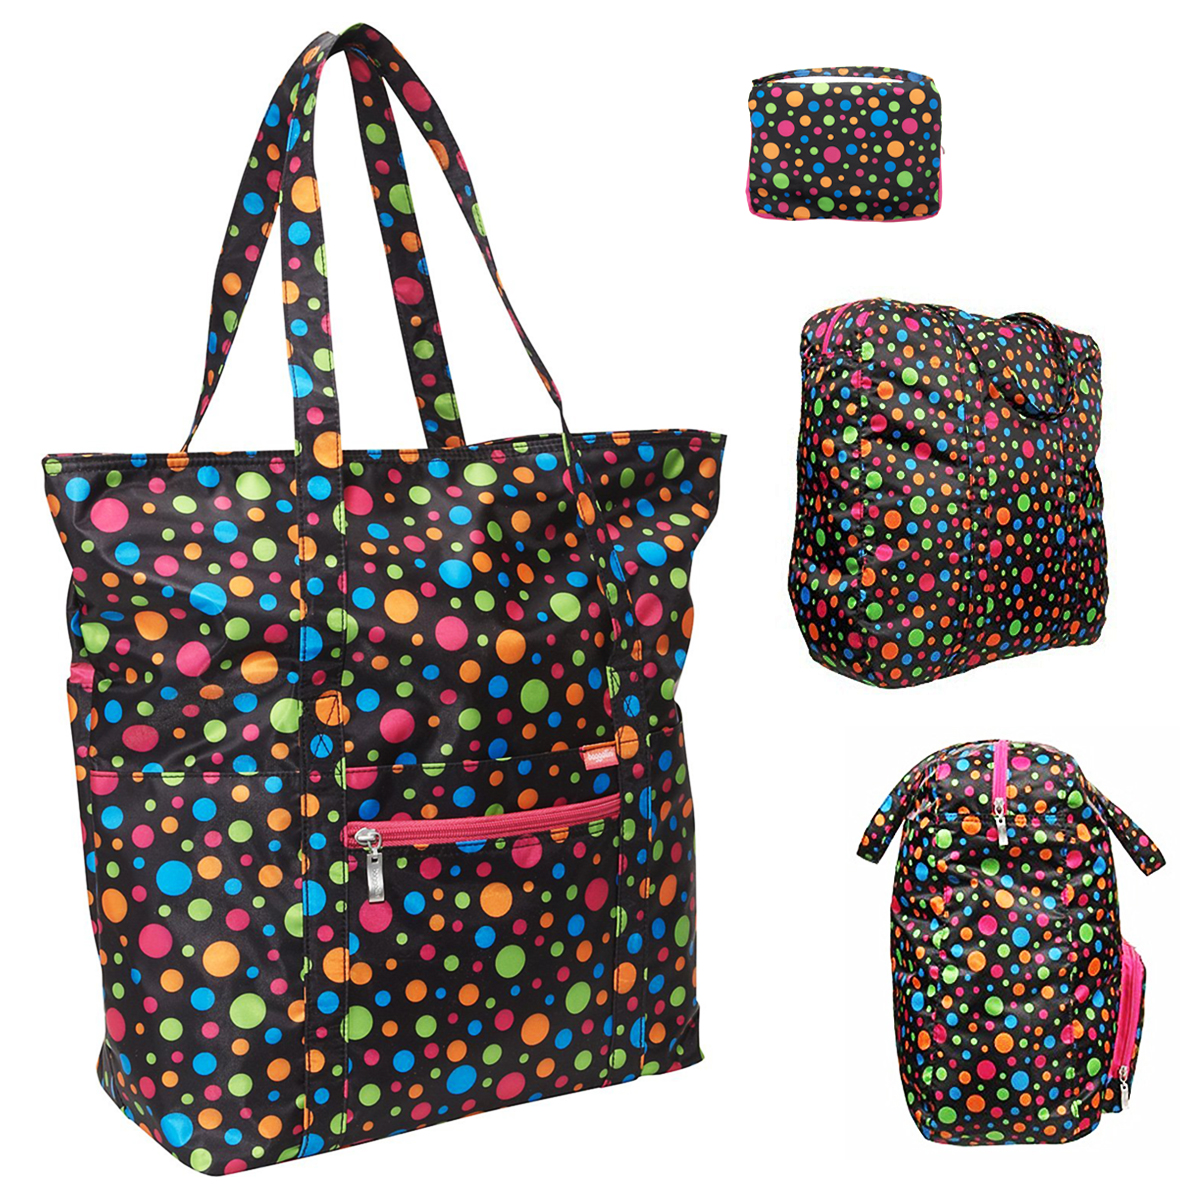 Baggallini Expandable Travel Shoulder Bag Grocery Tote Compact Case Carry-on